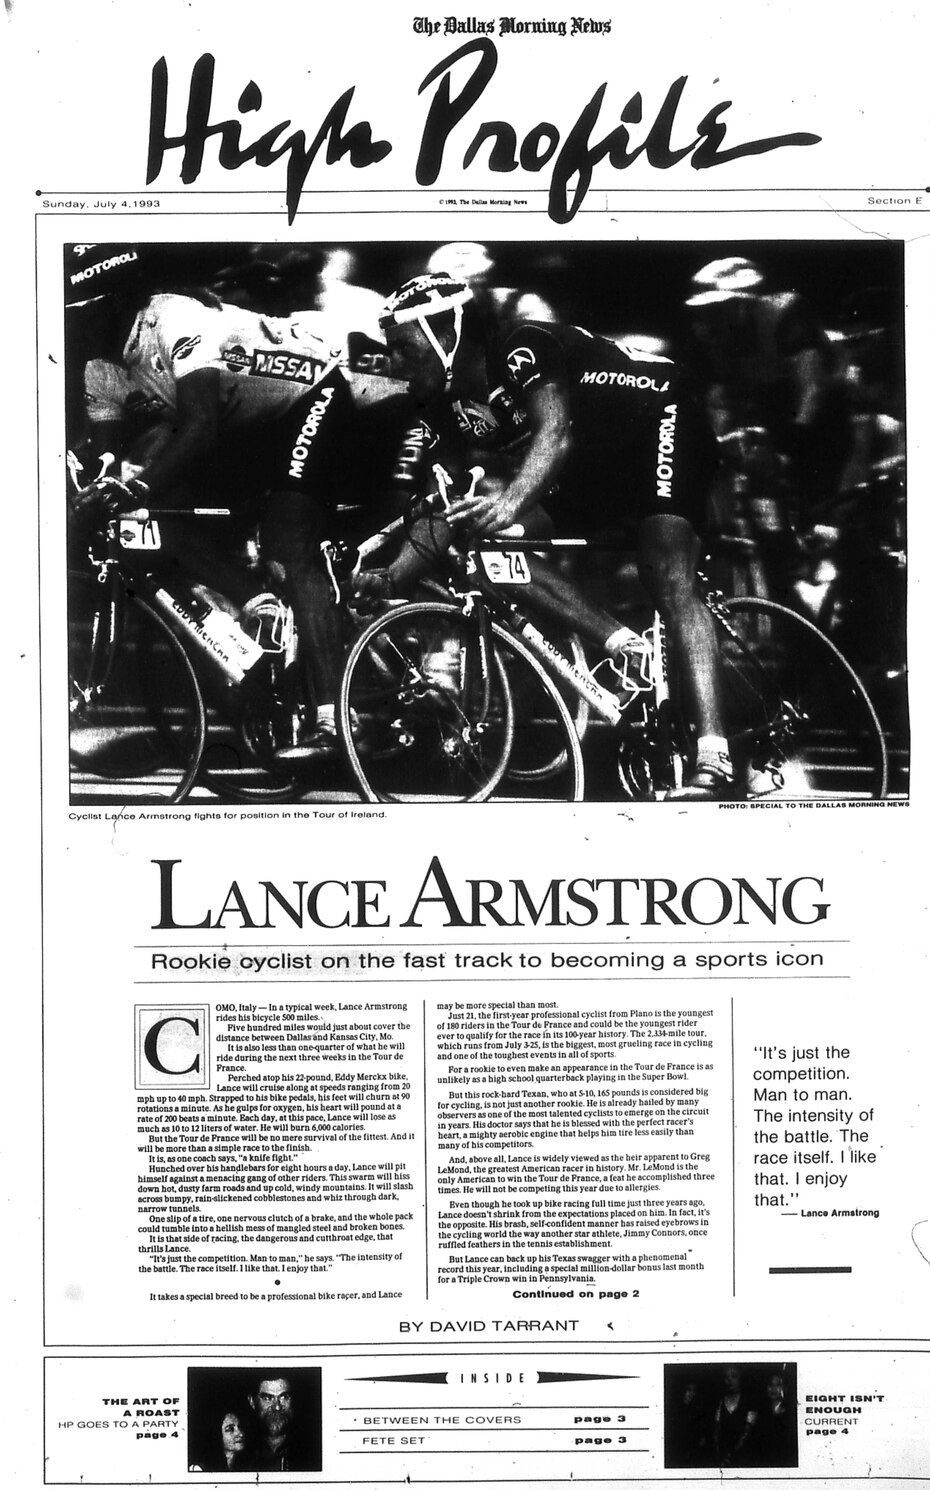 Profile of Lance Armstrong published July 4, 1993.